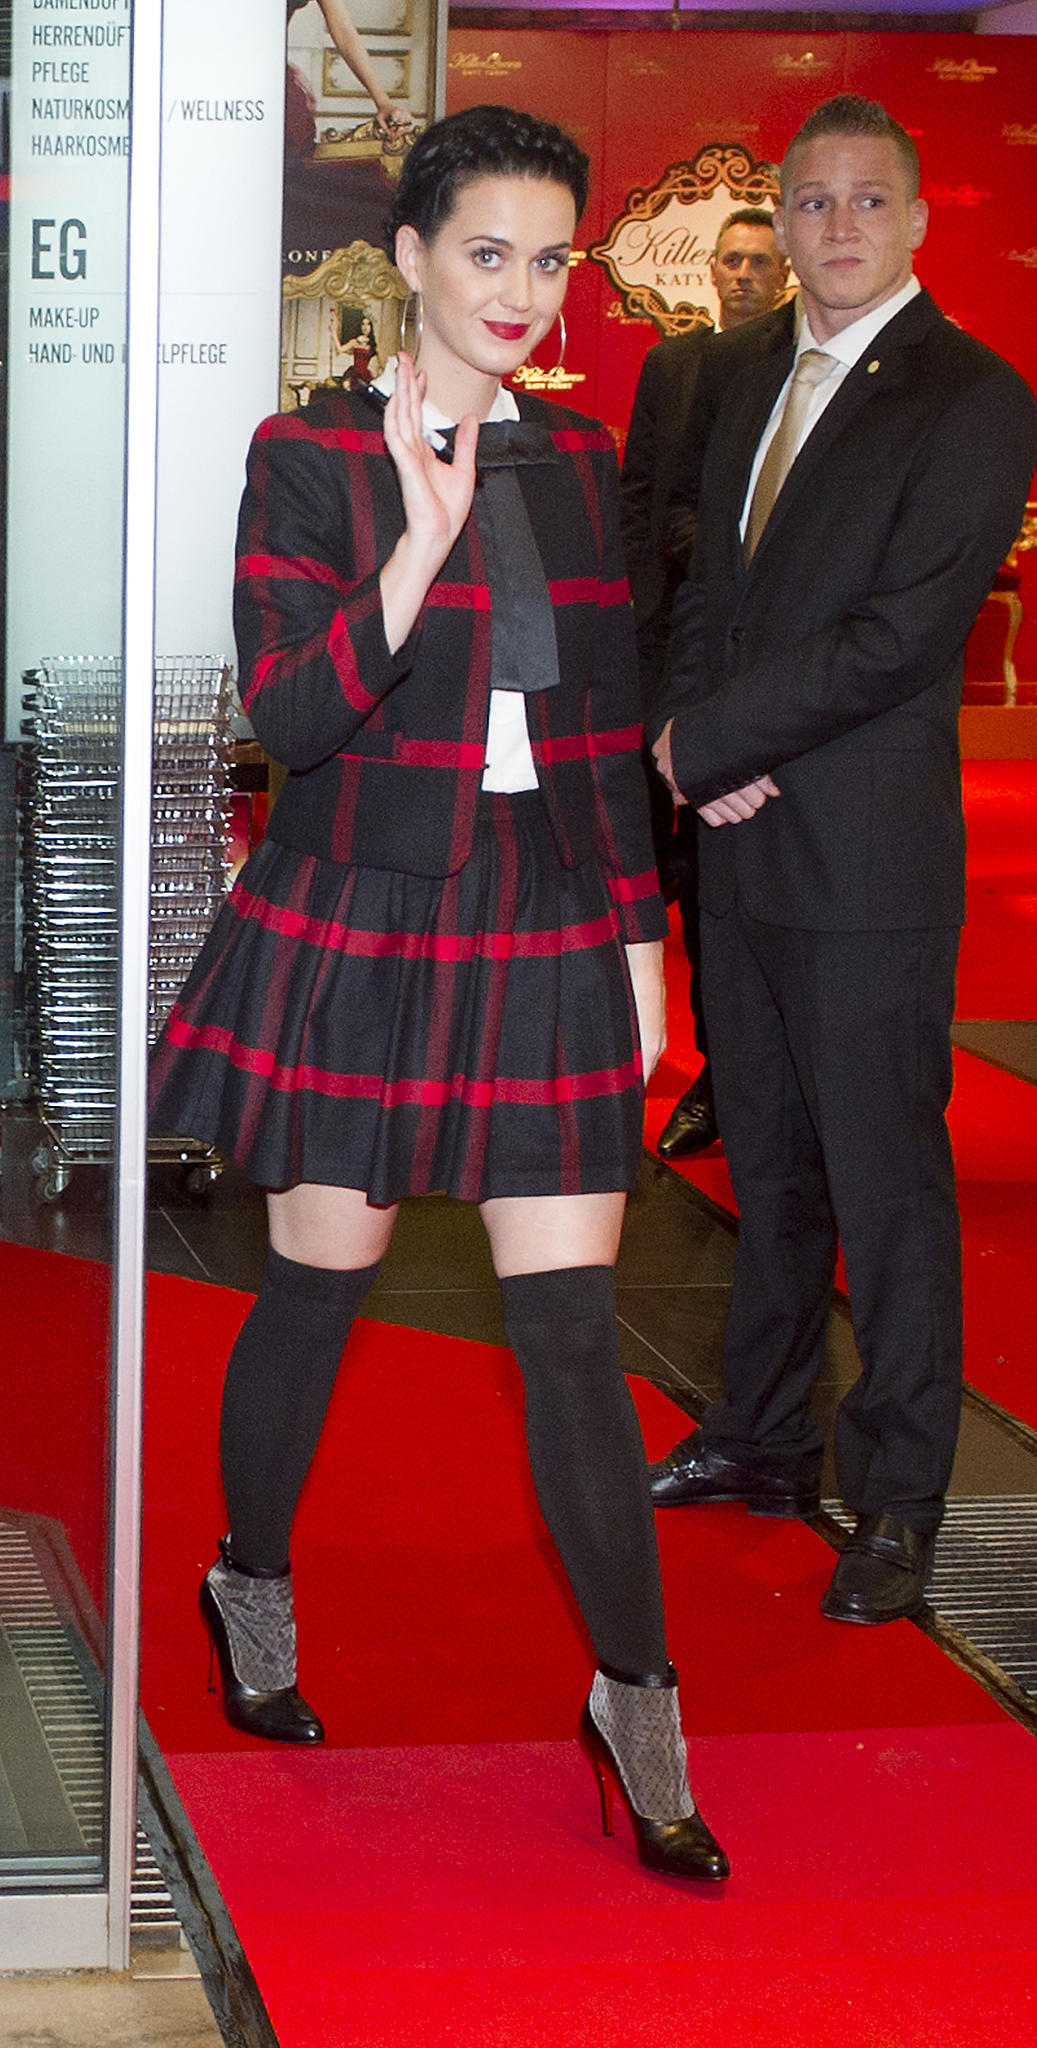 Katy Perry shows off her schoolgirl style in Berlin. (Getty Images